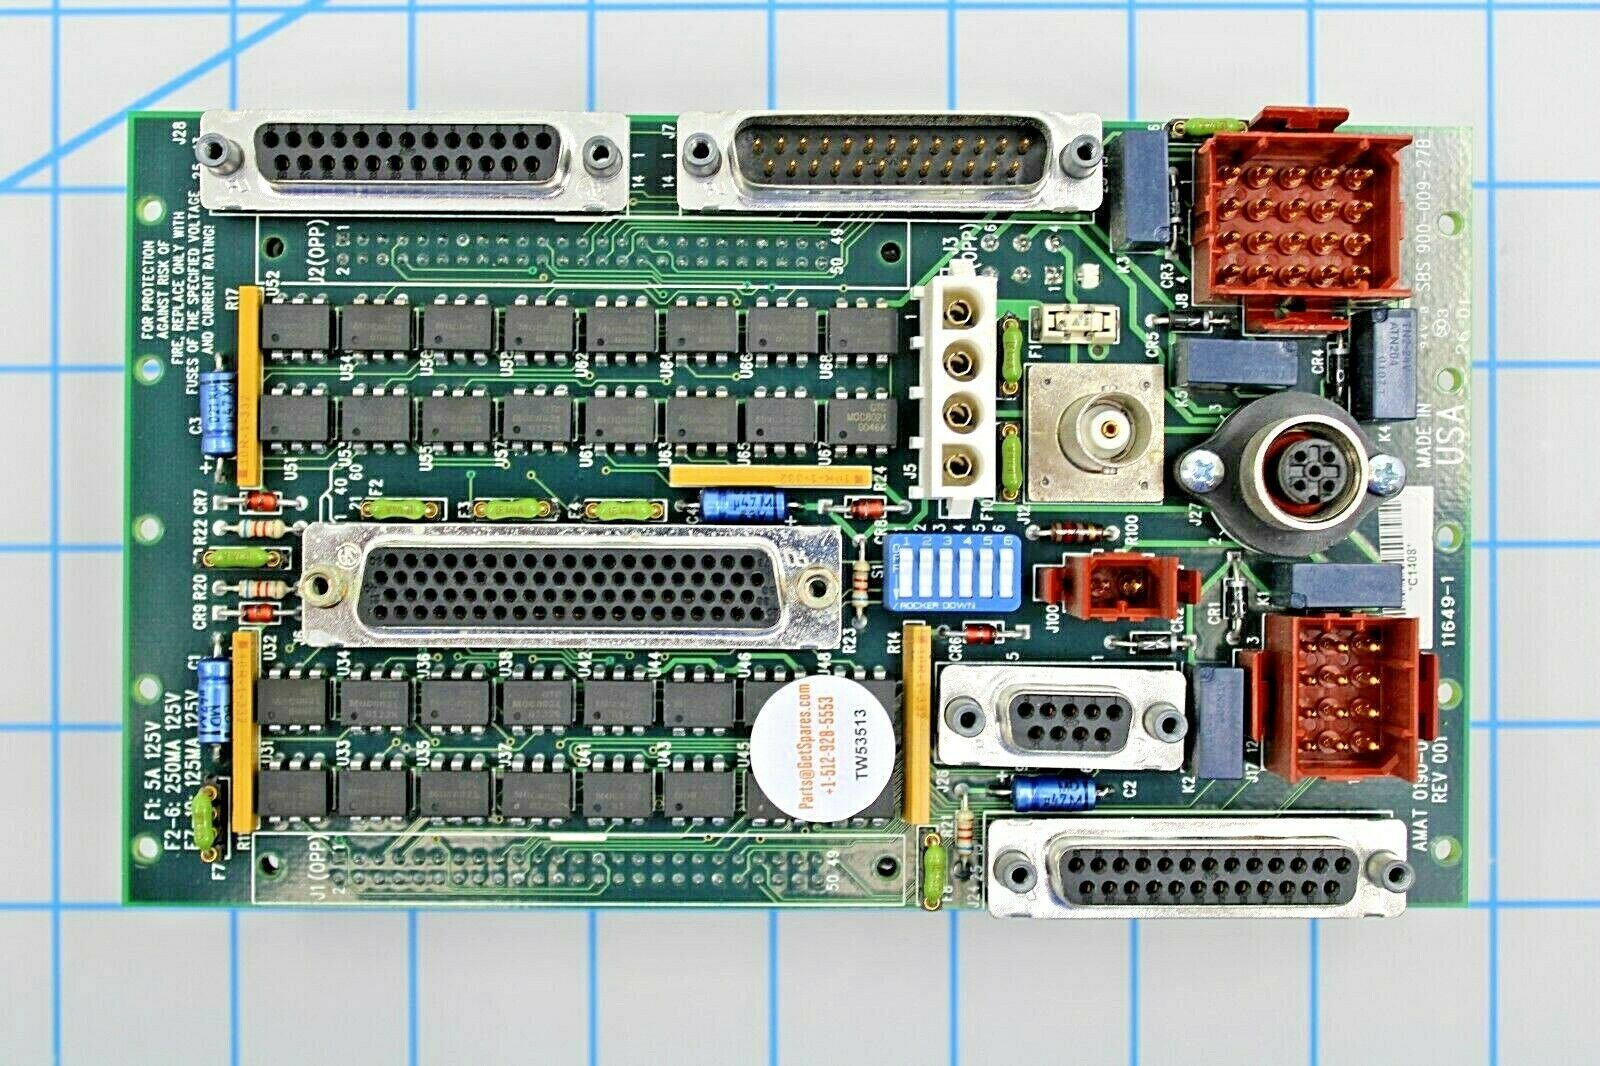 0190-04098 / PCB, 5.X FACTORY INTERFACE I/O DISTRIBUTION, FOR 0090-01220 / AMAT